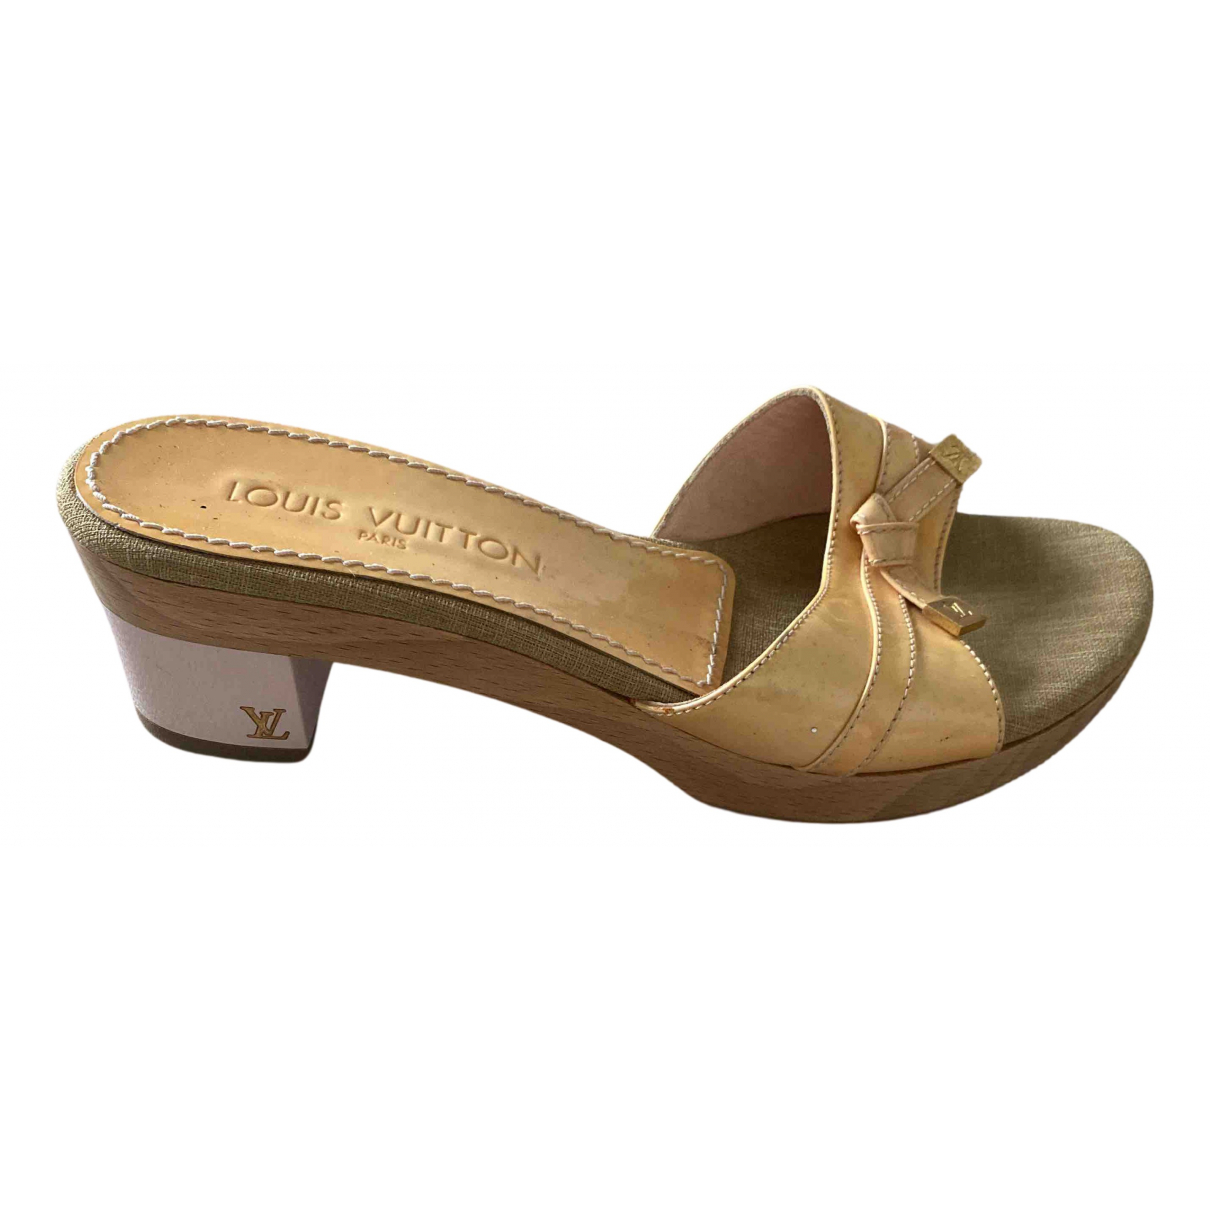 Louis Vuitton N Beige Leather Mules & Clogs for Women 37.5 IT